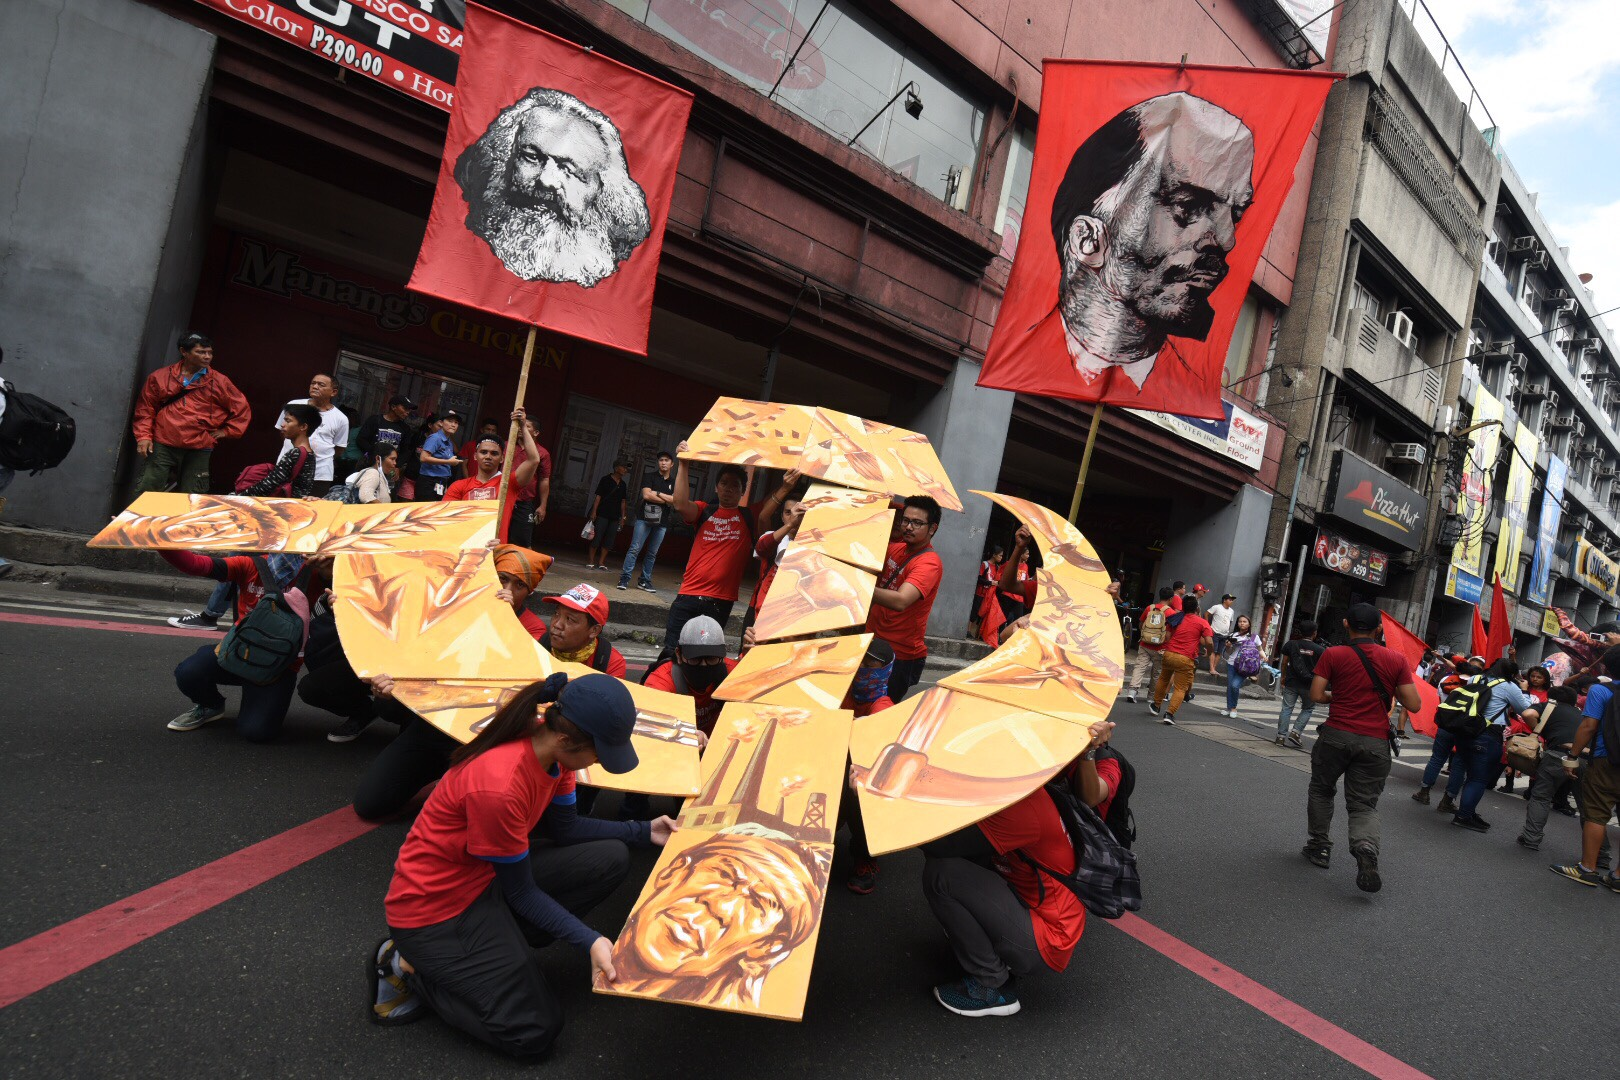 ICONS. Flags with the faces of Karl Marx and Vladimir Lenin and a stylized hammer and sickle showing faces of the Filipino marginalized are being positioned by protesters. Photo by Alecs Ongcal/Rappler